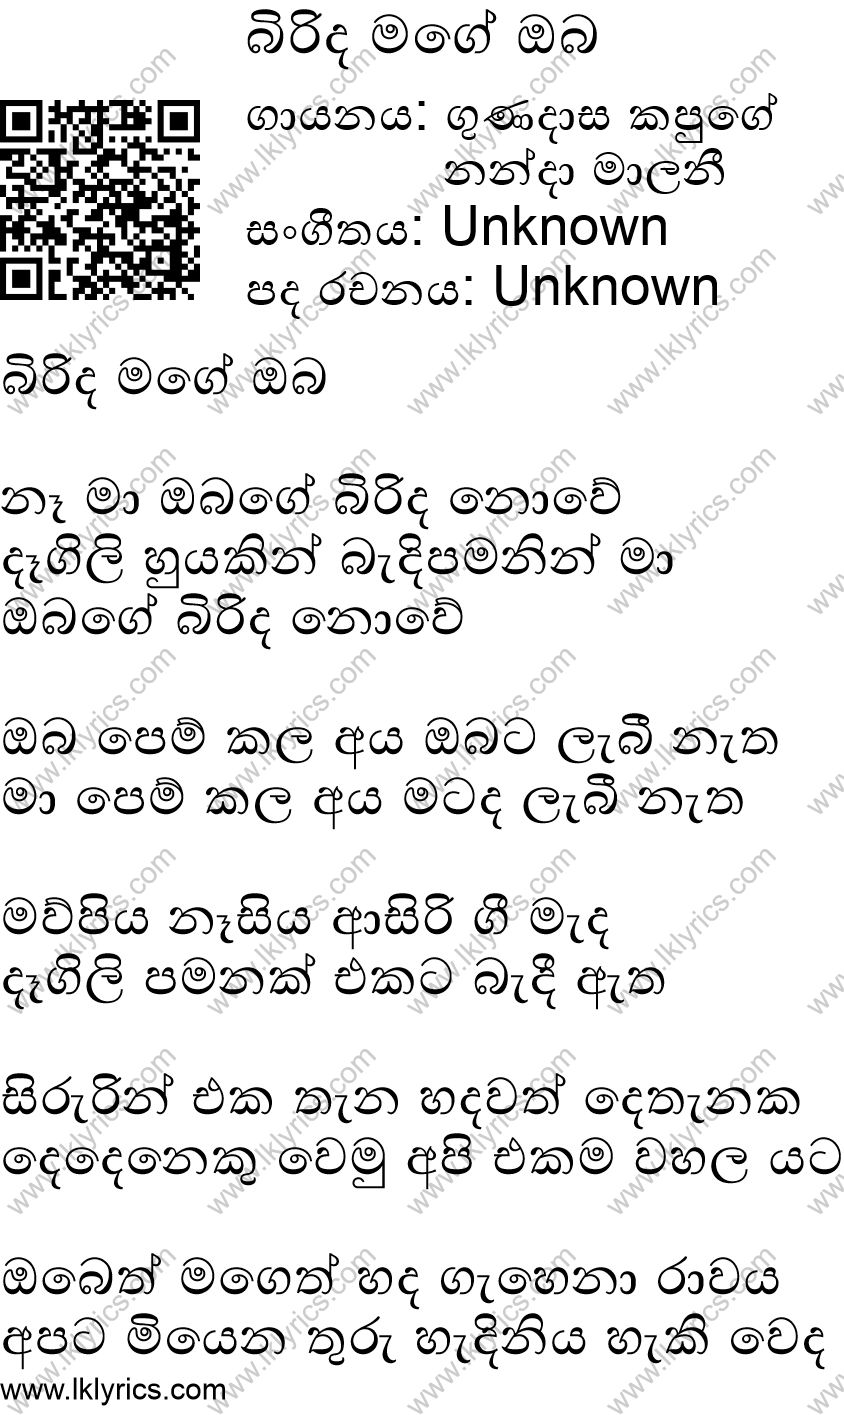 Ninda Nathi Raye - Guitar Chords and Lyrics By Gunadasa ...